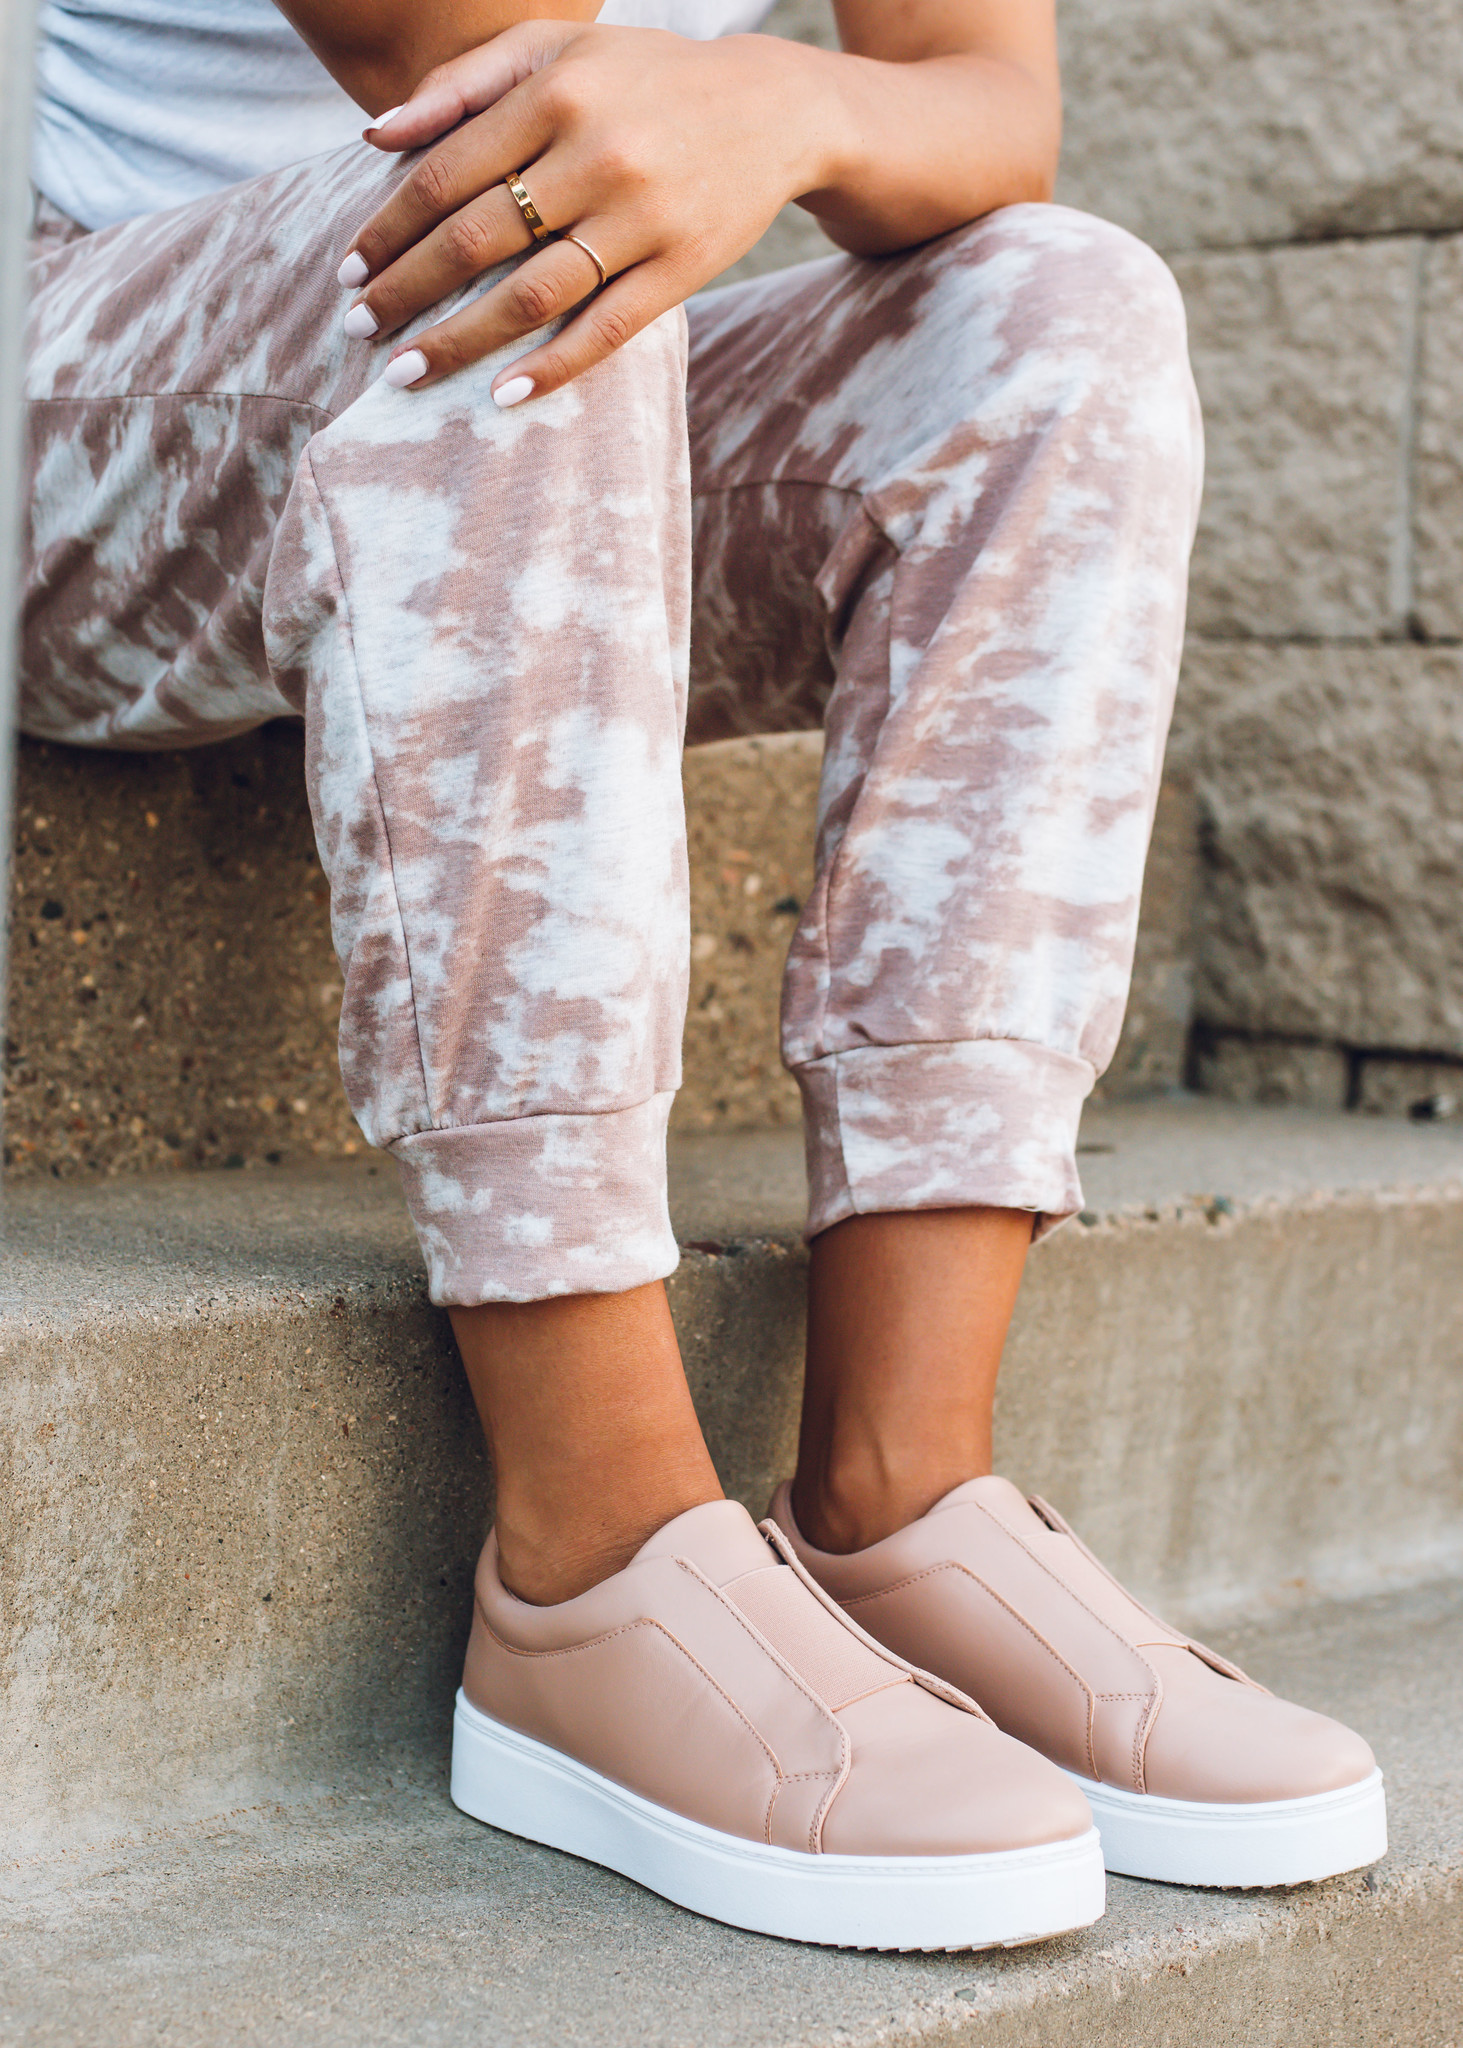 SIDEWALK PLATFORM SNEAKERS -BLUSH